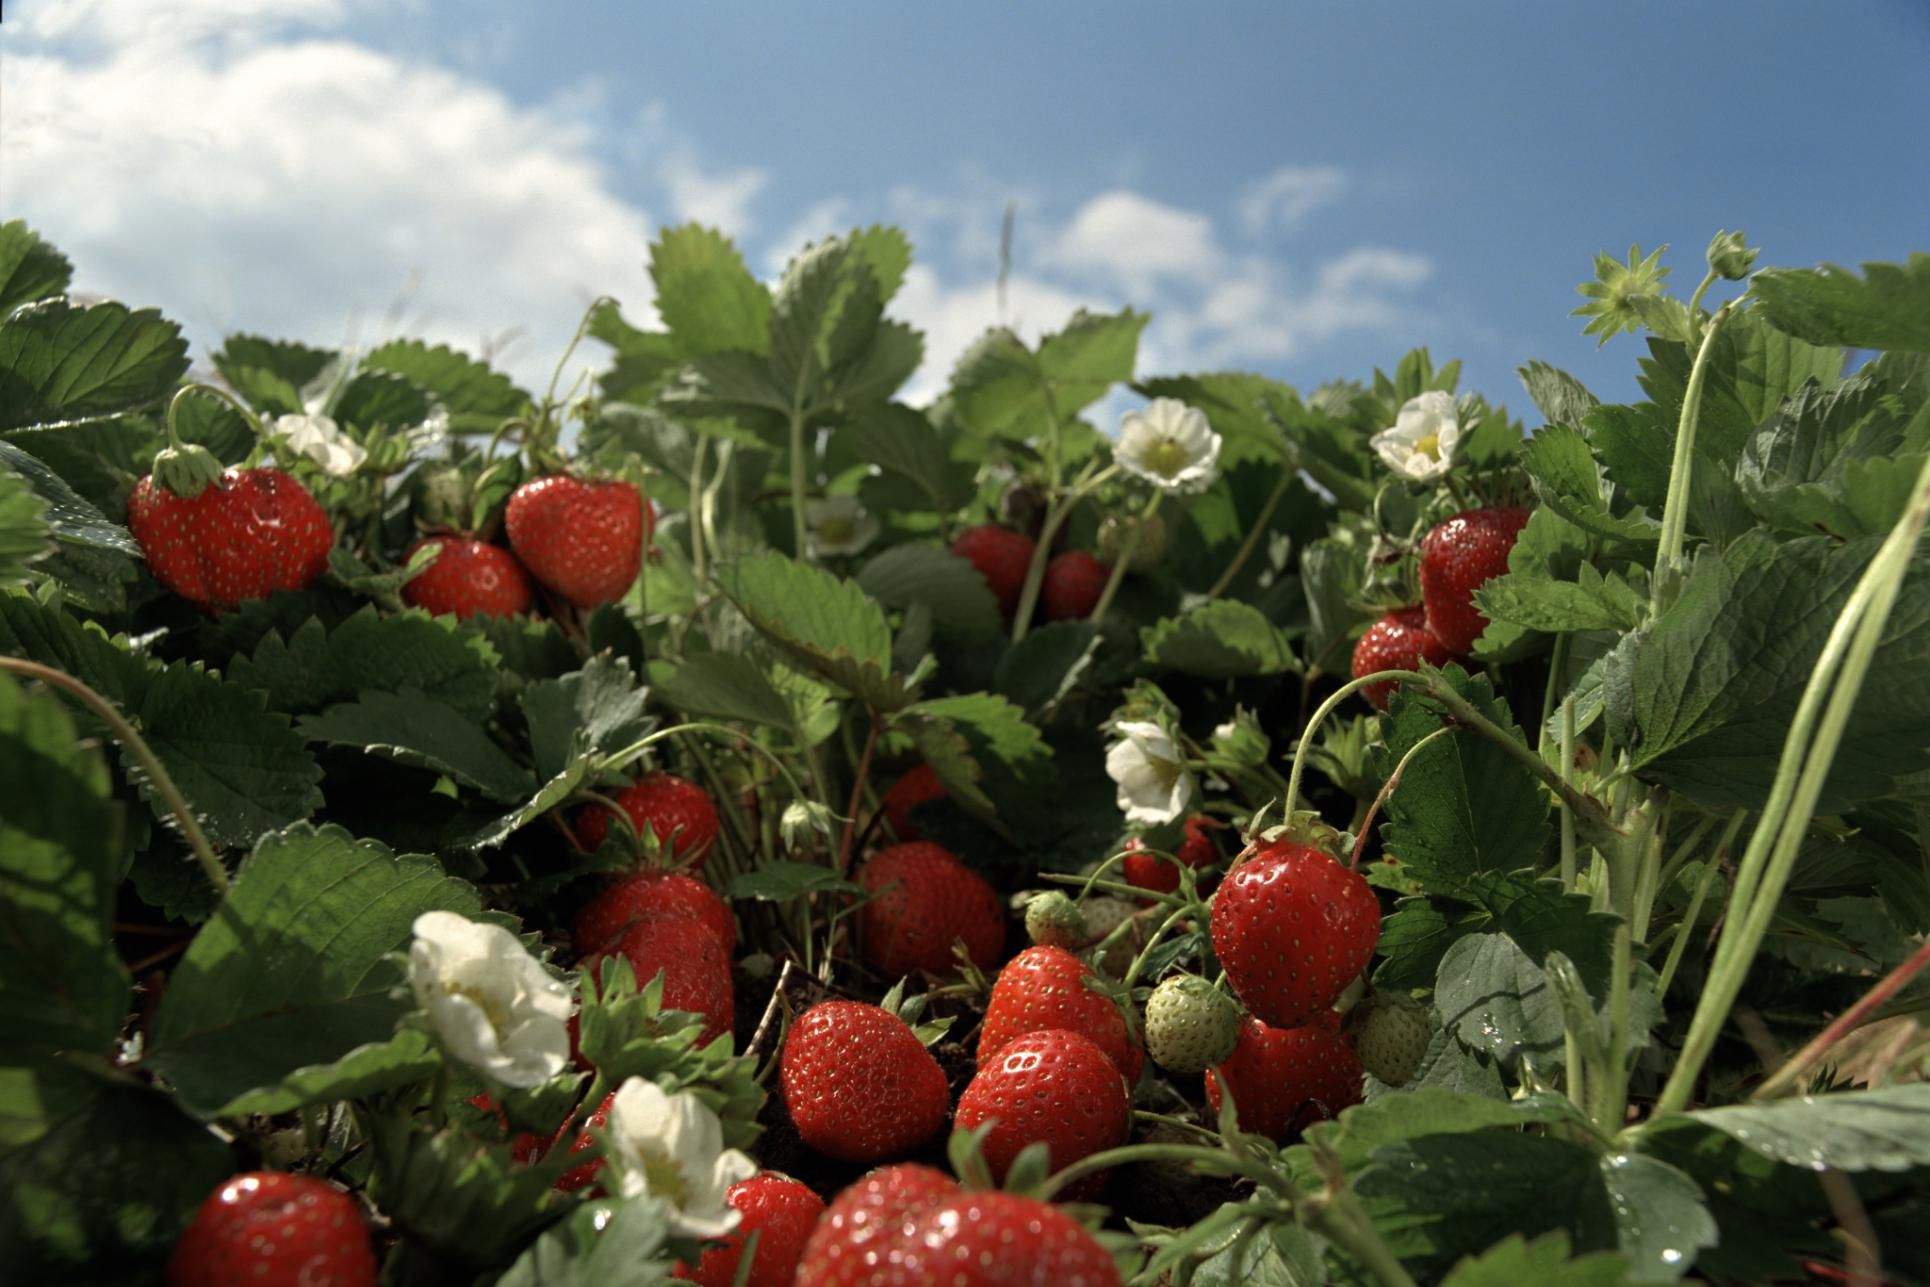 How To Organically Control Strawberry Pests